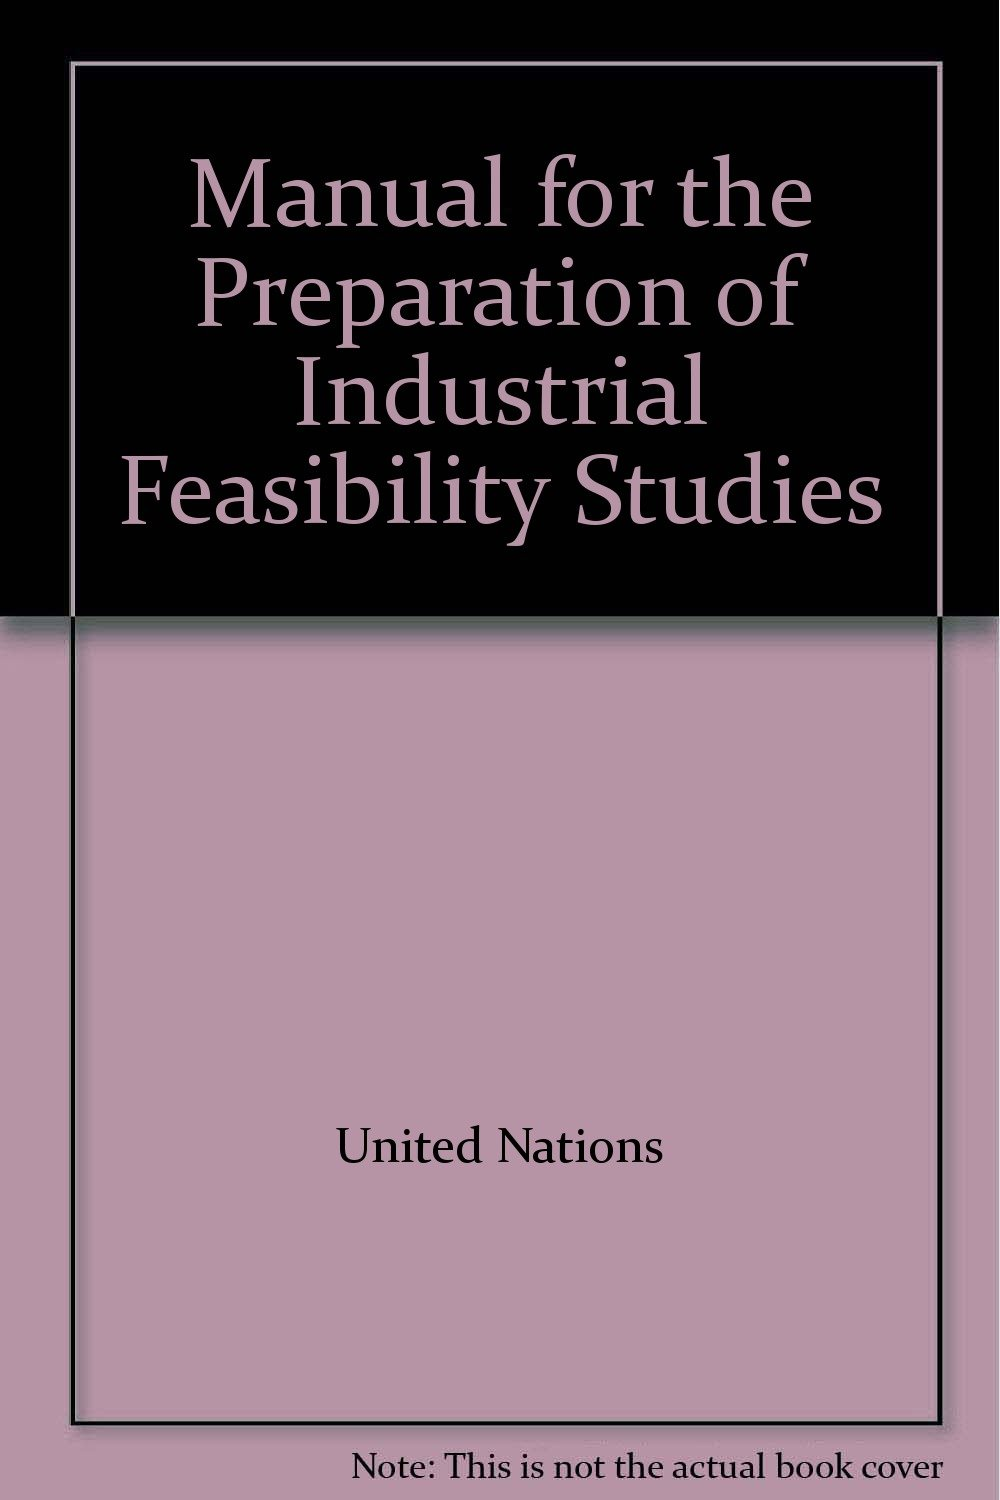 Buy Manual for the Preparation of Industrial Feasibility Studies Book  Online at Low Prices in India | Manual for the Preparation of Industrial  Feasibility ...